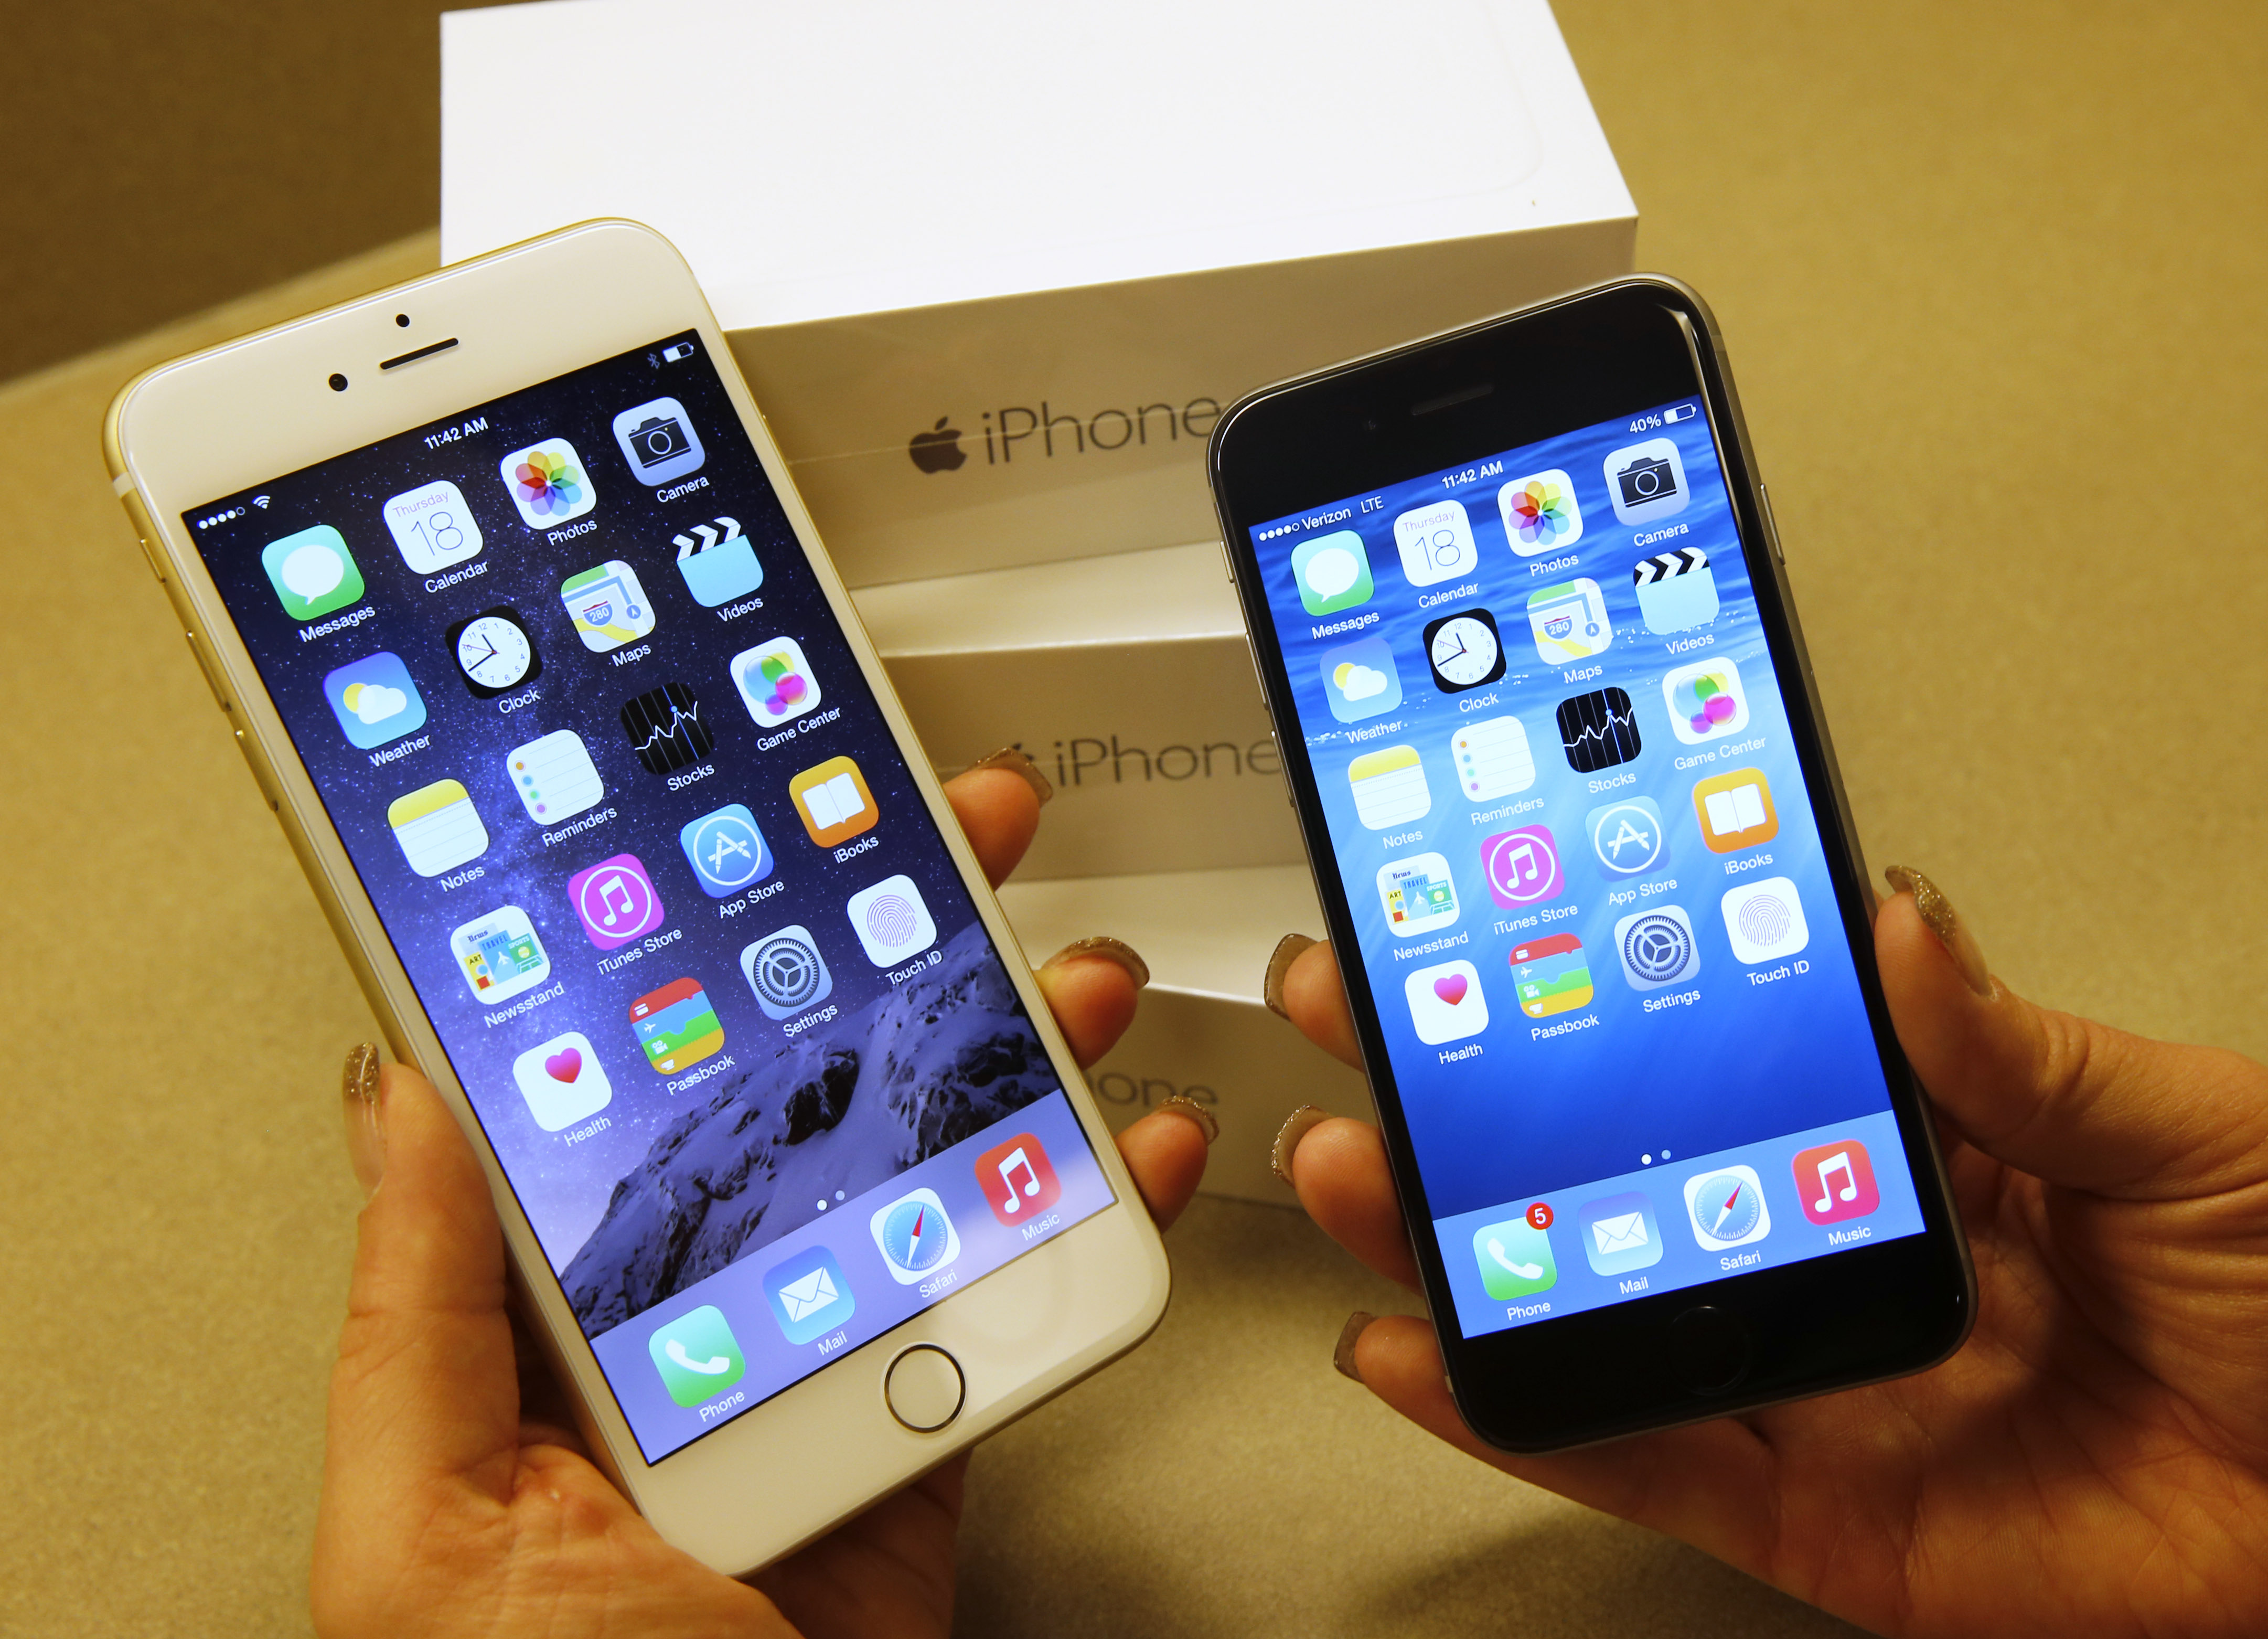 Apple's  iPhone 6 (R) and iPhone 6 Plus (L) phones are shown together at a Verizon store in Orem, Utah on September 18, 2014 in Orem, Utah.